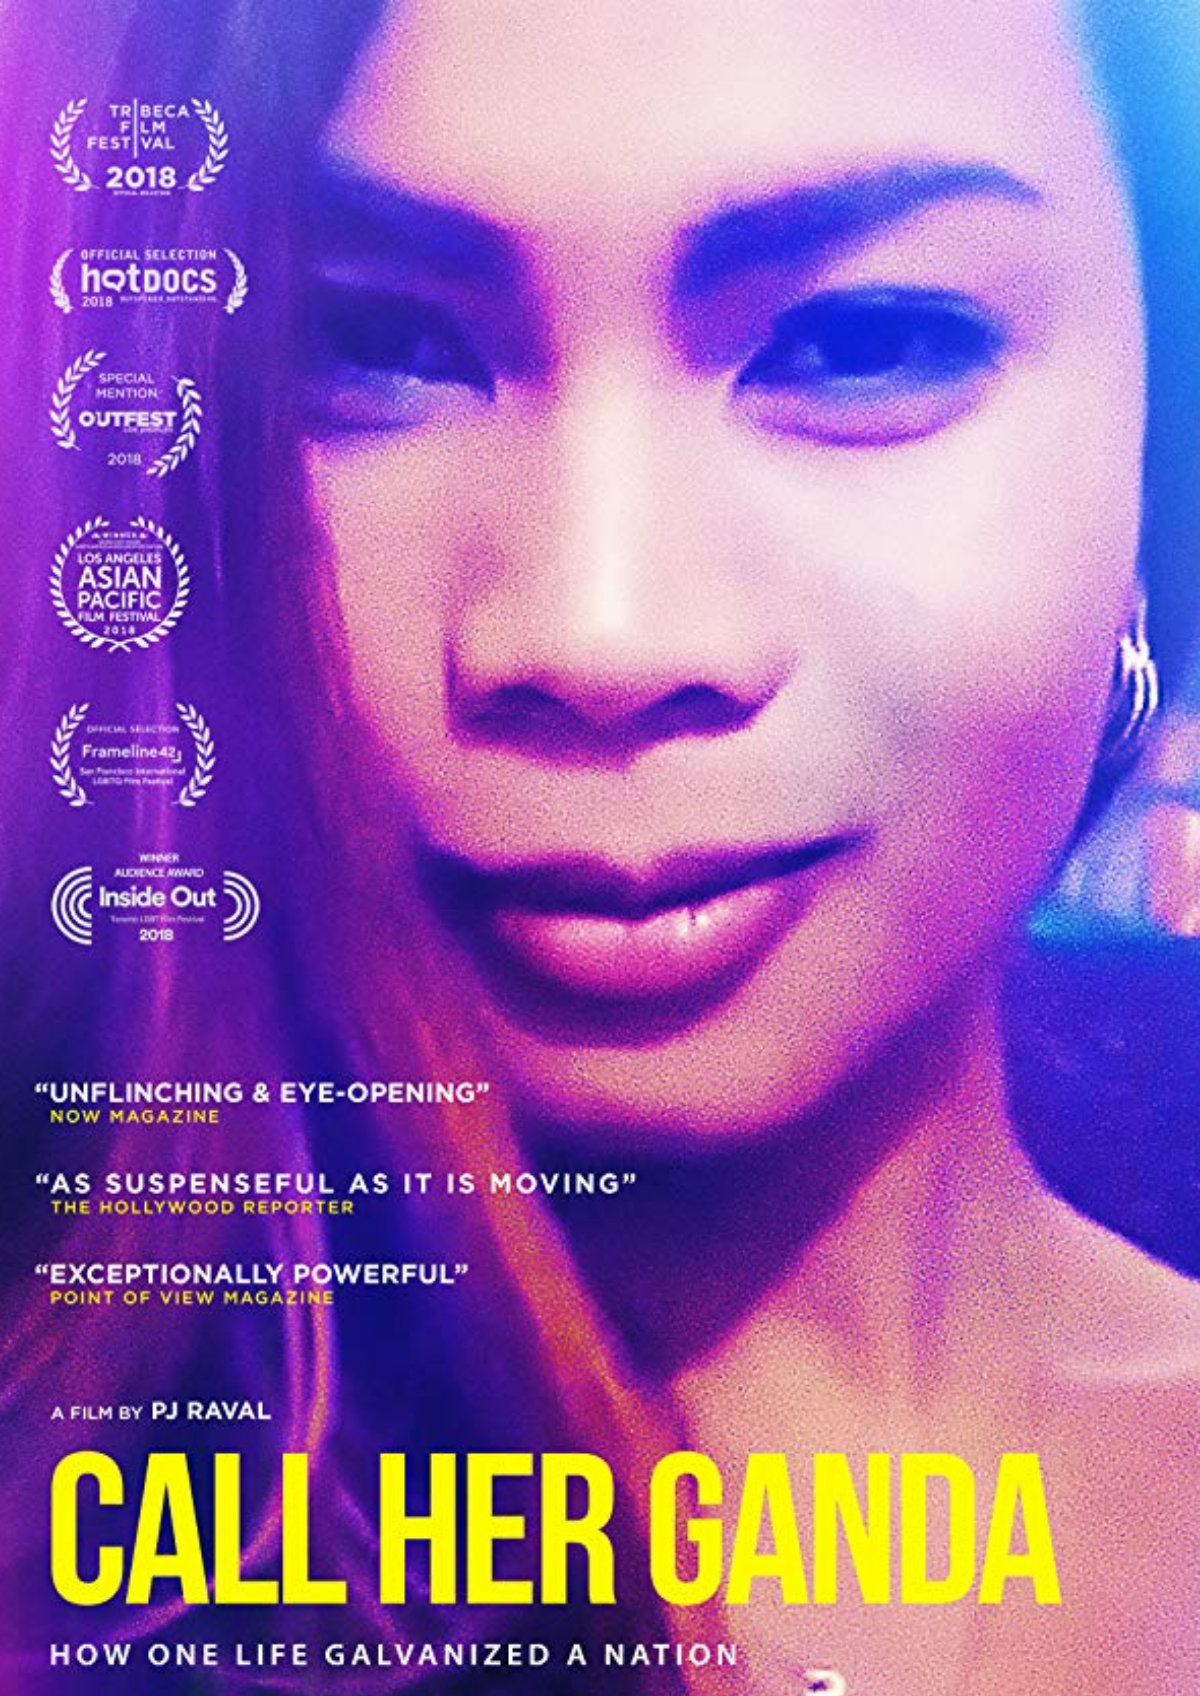 'Call Her Ganda' movie poster